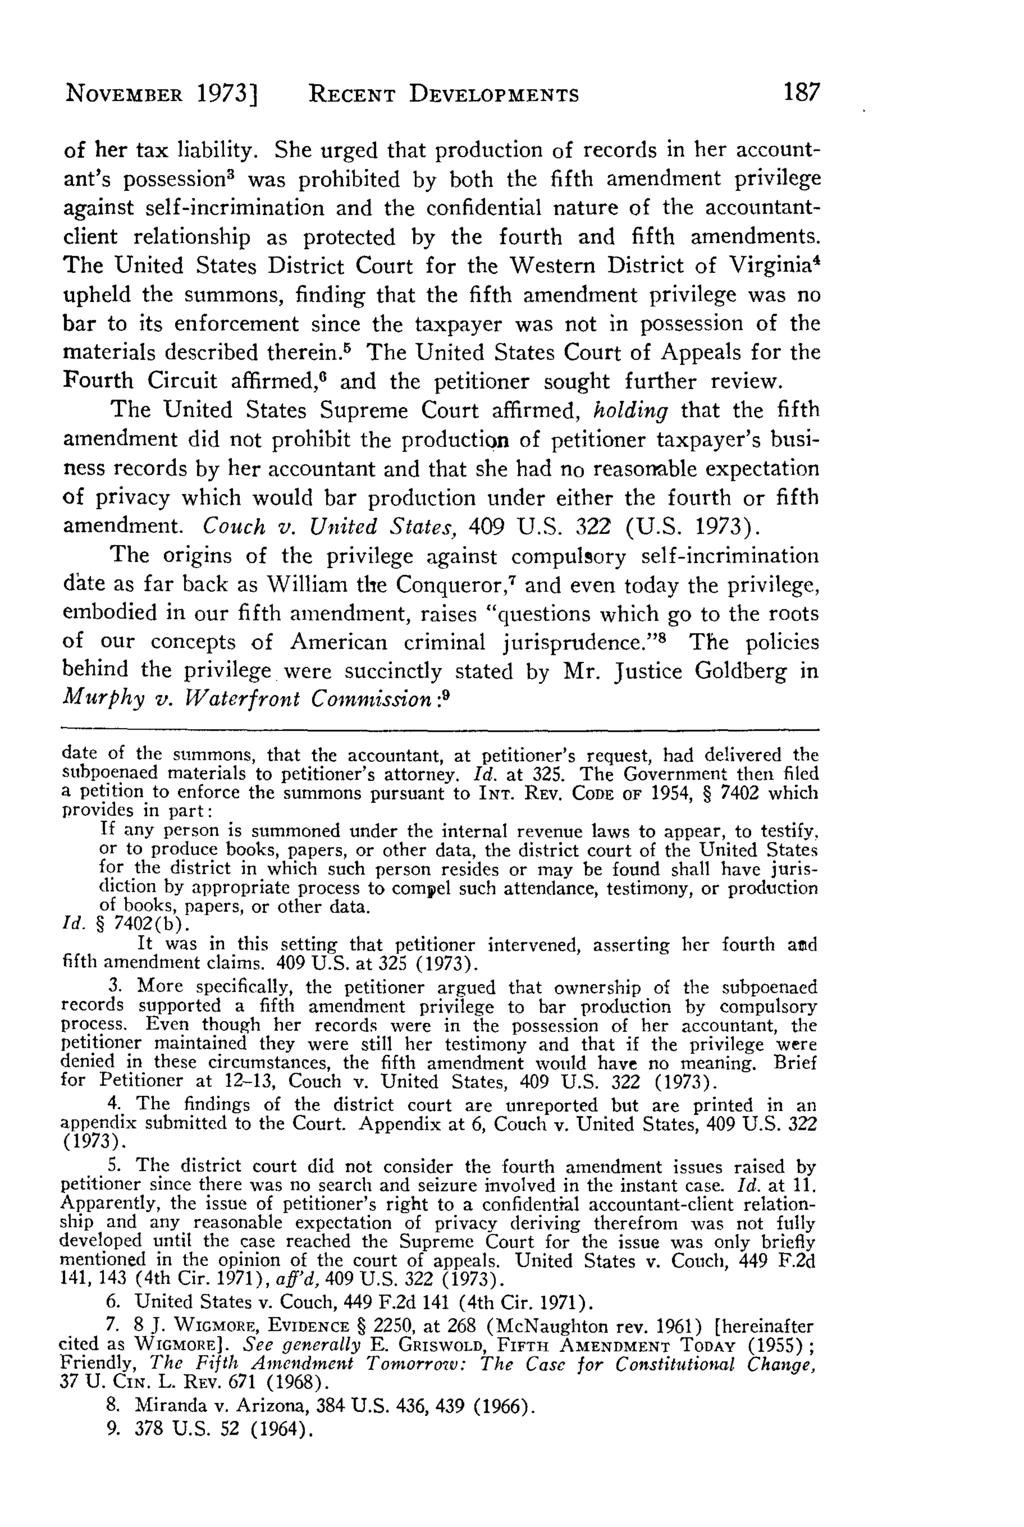 NOVEMBER 1973] Villanova Law Review, Vol. 19, Iss. 1 [1973], Art. 6 RECENT DEVELOPMENTS of her tax liability.